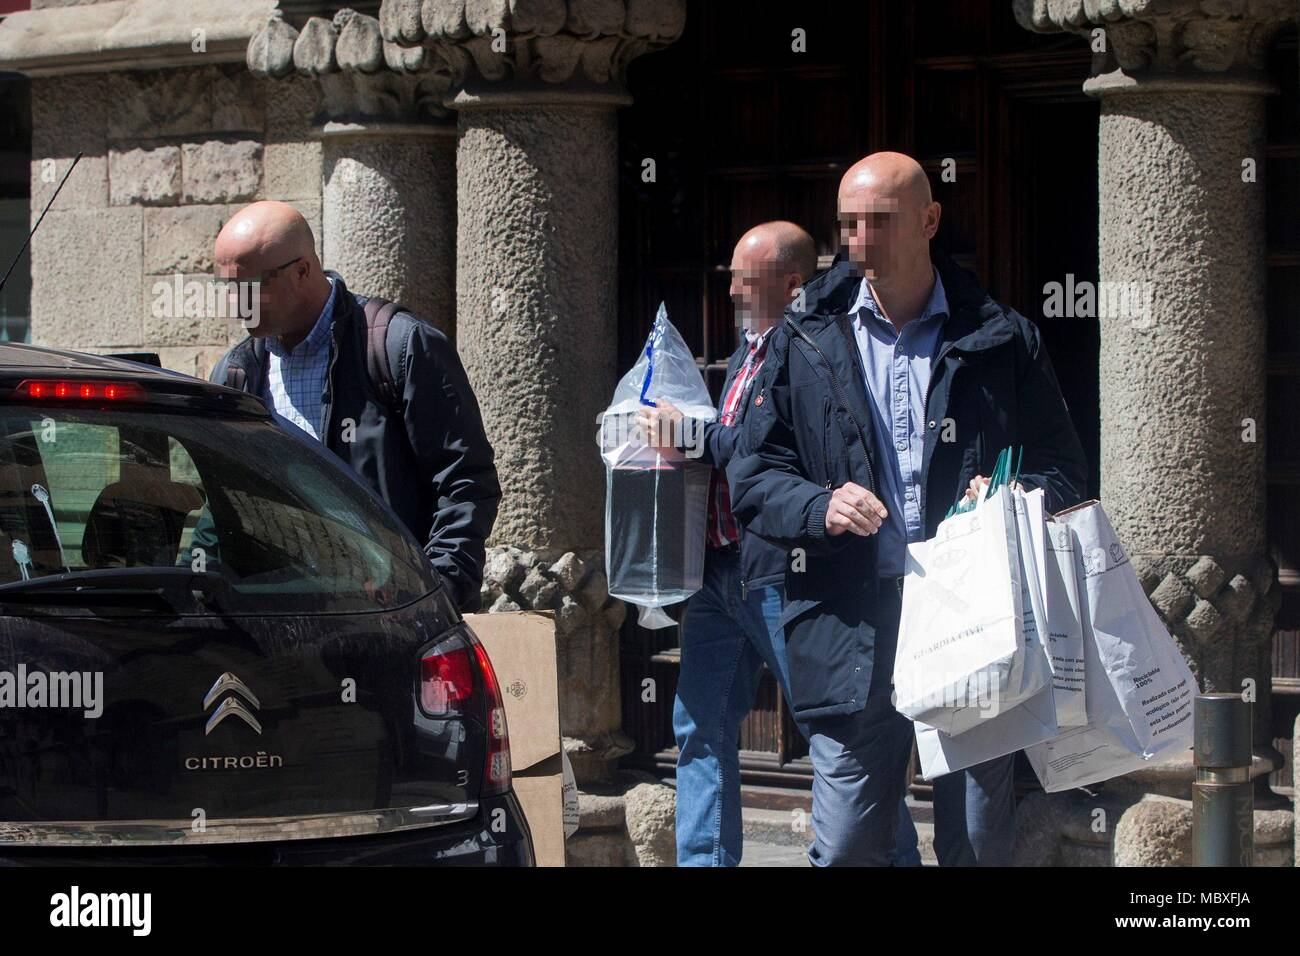 Barcelona, Spain. 12th Apr, 2018. Spanish Guardia Civil members leave with evidence after a police search at the Council of Public Diplomacy of Catalonia (Diplocat) in response to an order issued by the judge investigating the preparations for the illegal Catalan independence referendum held on 01 October, in Barcelona, northeastern Spain, 12 April 2018. Credit: QUIQUE GARCIA/EFE/Alamy Live News Stock Photo